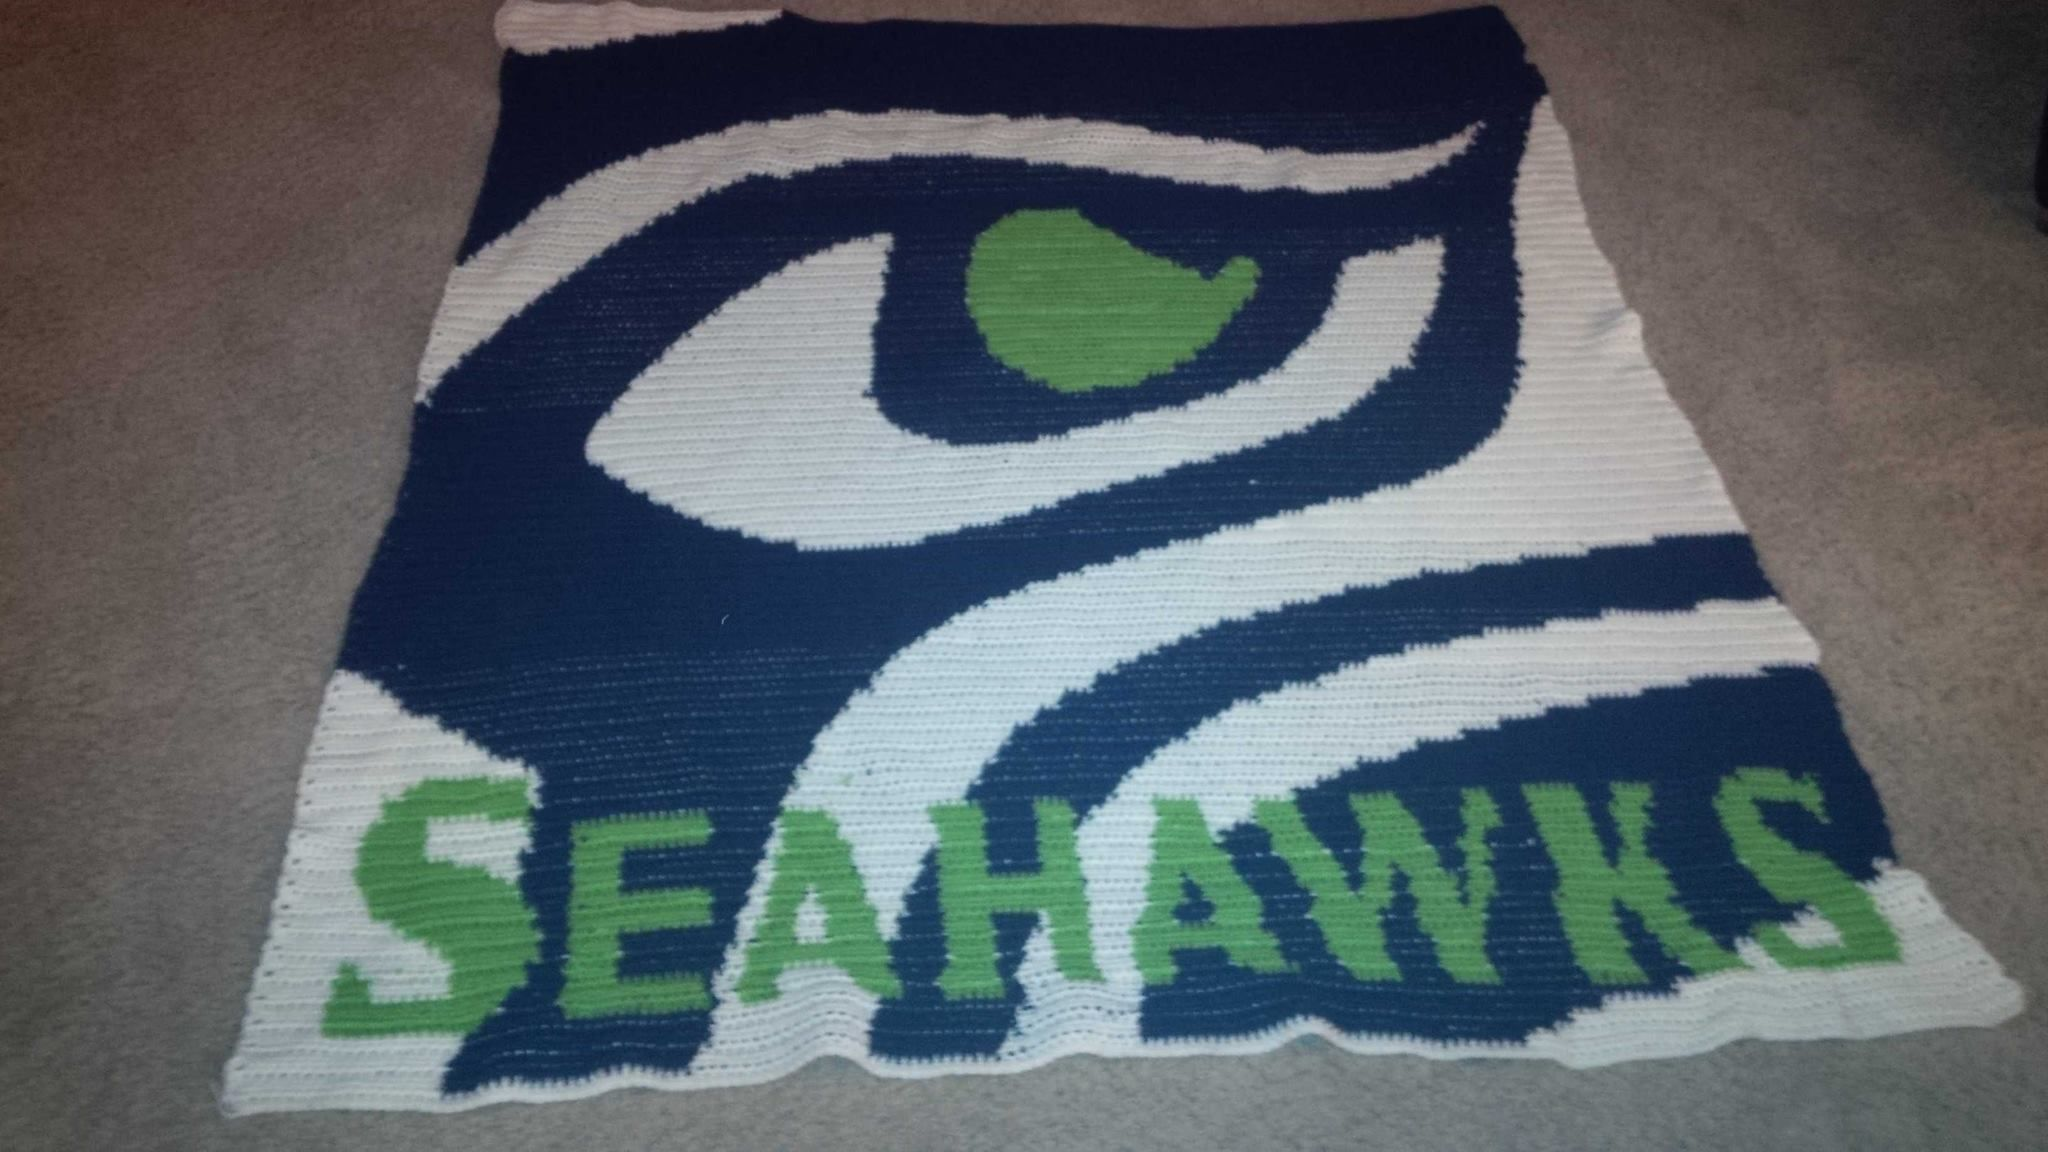 Handmade Crochet Seahawks Blanket Updated To Include